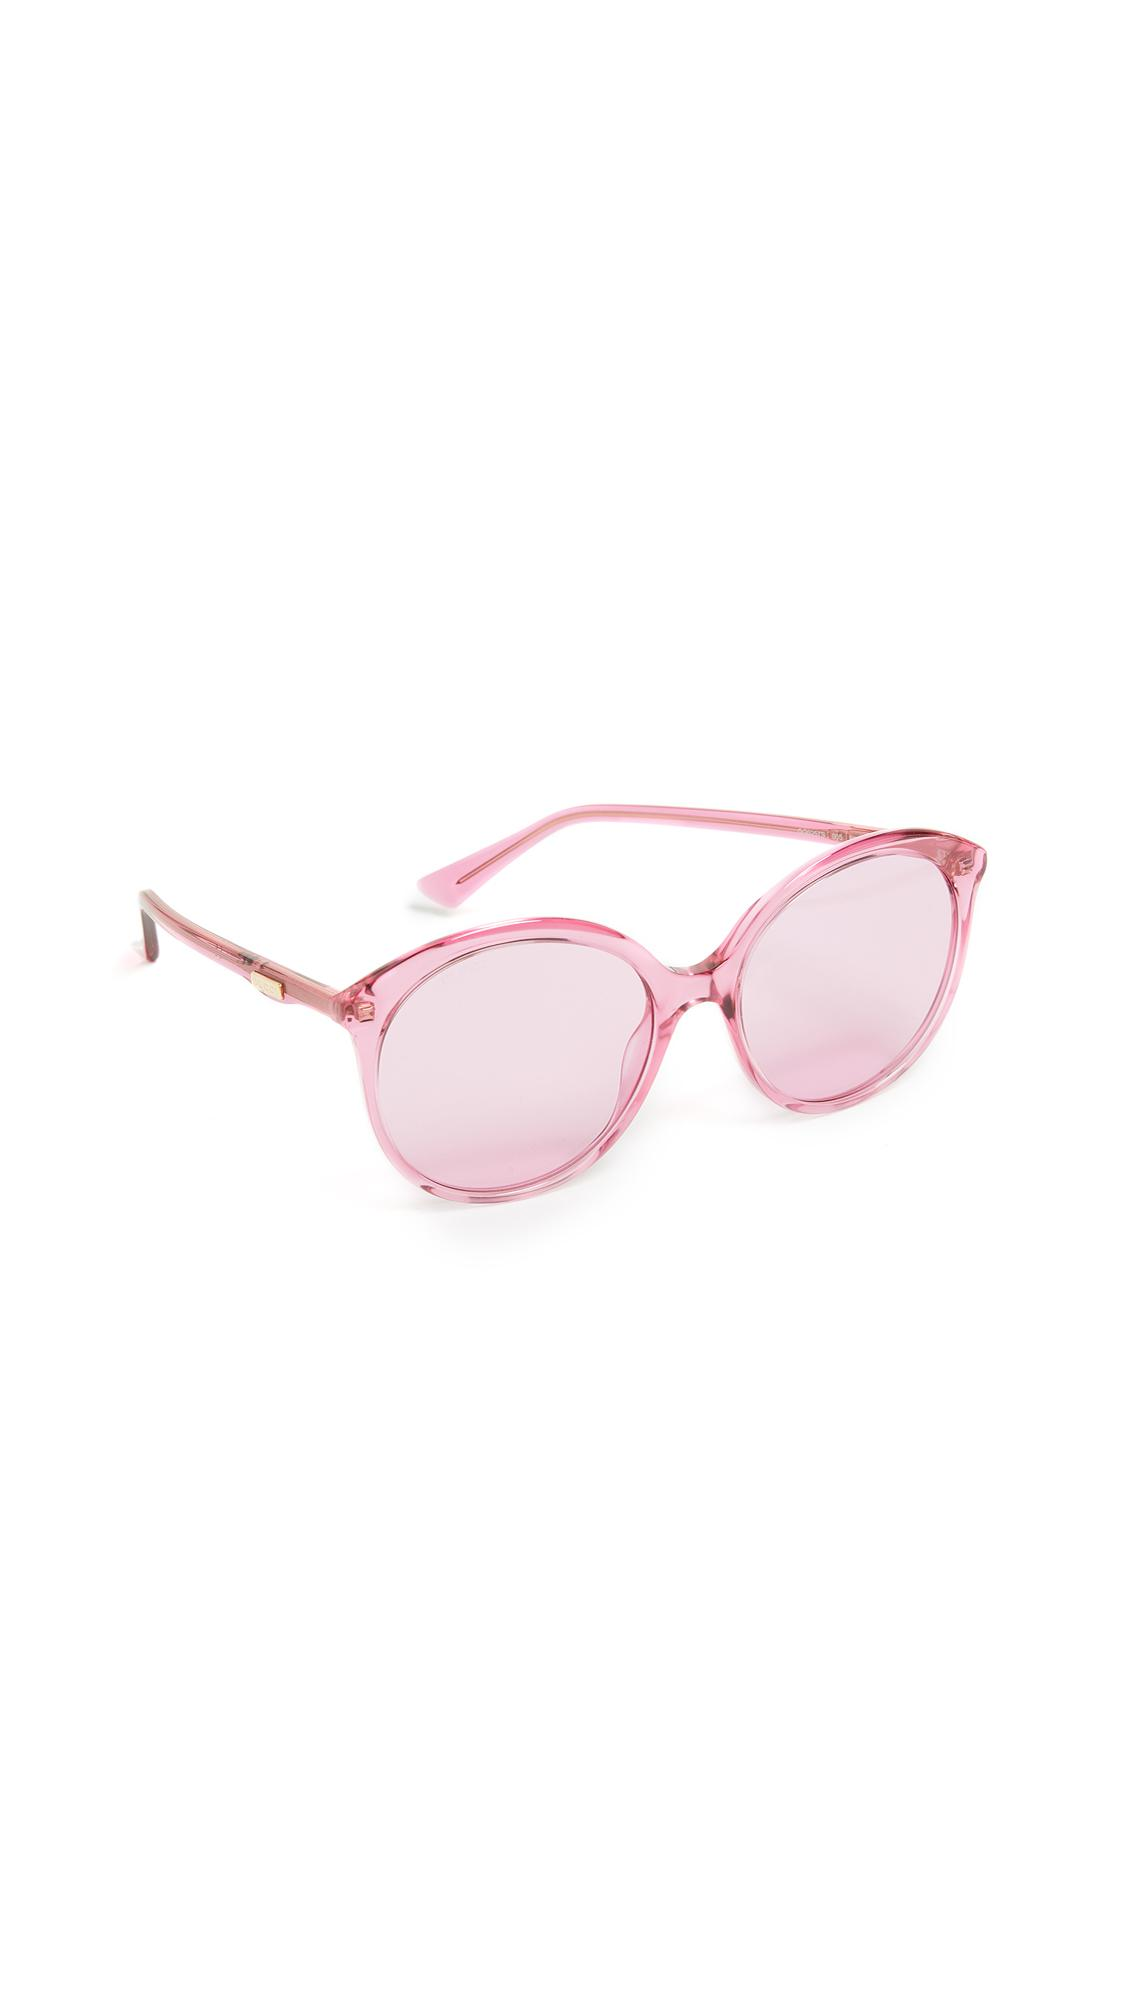 842afb481c ... Round Monocolor Sunglasses - Lyst. View fullscreen